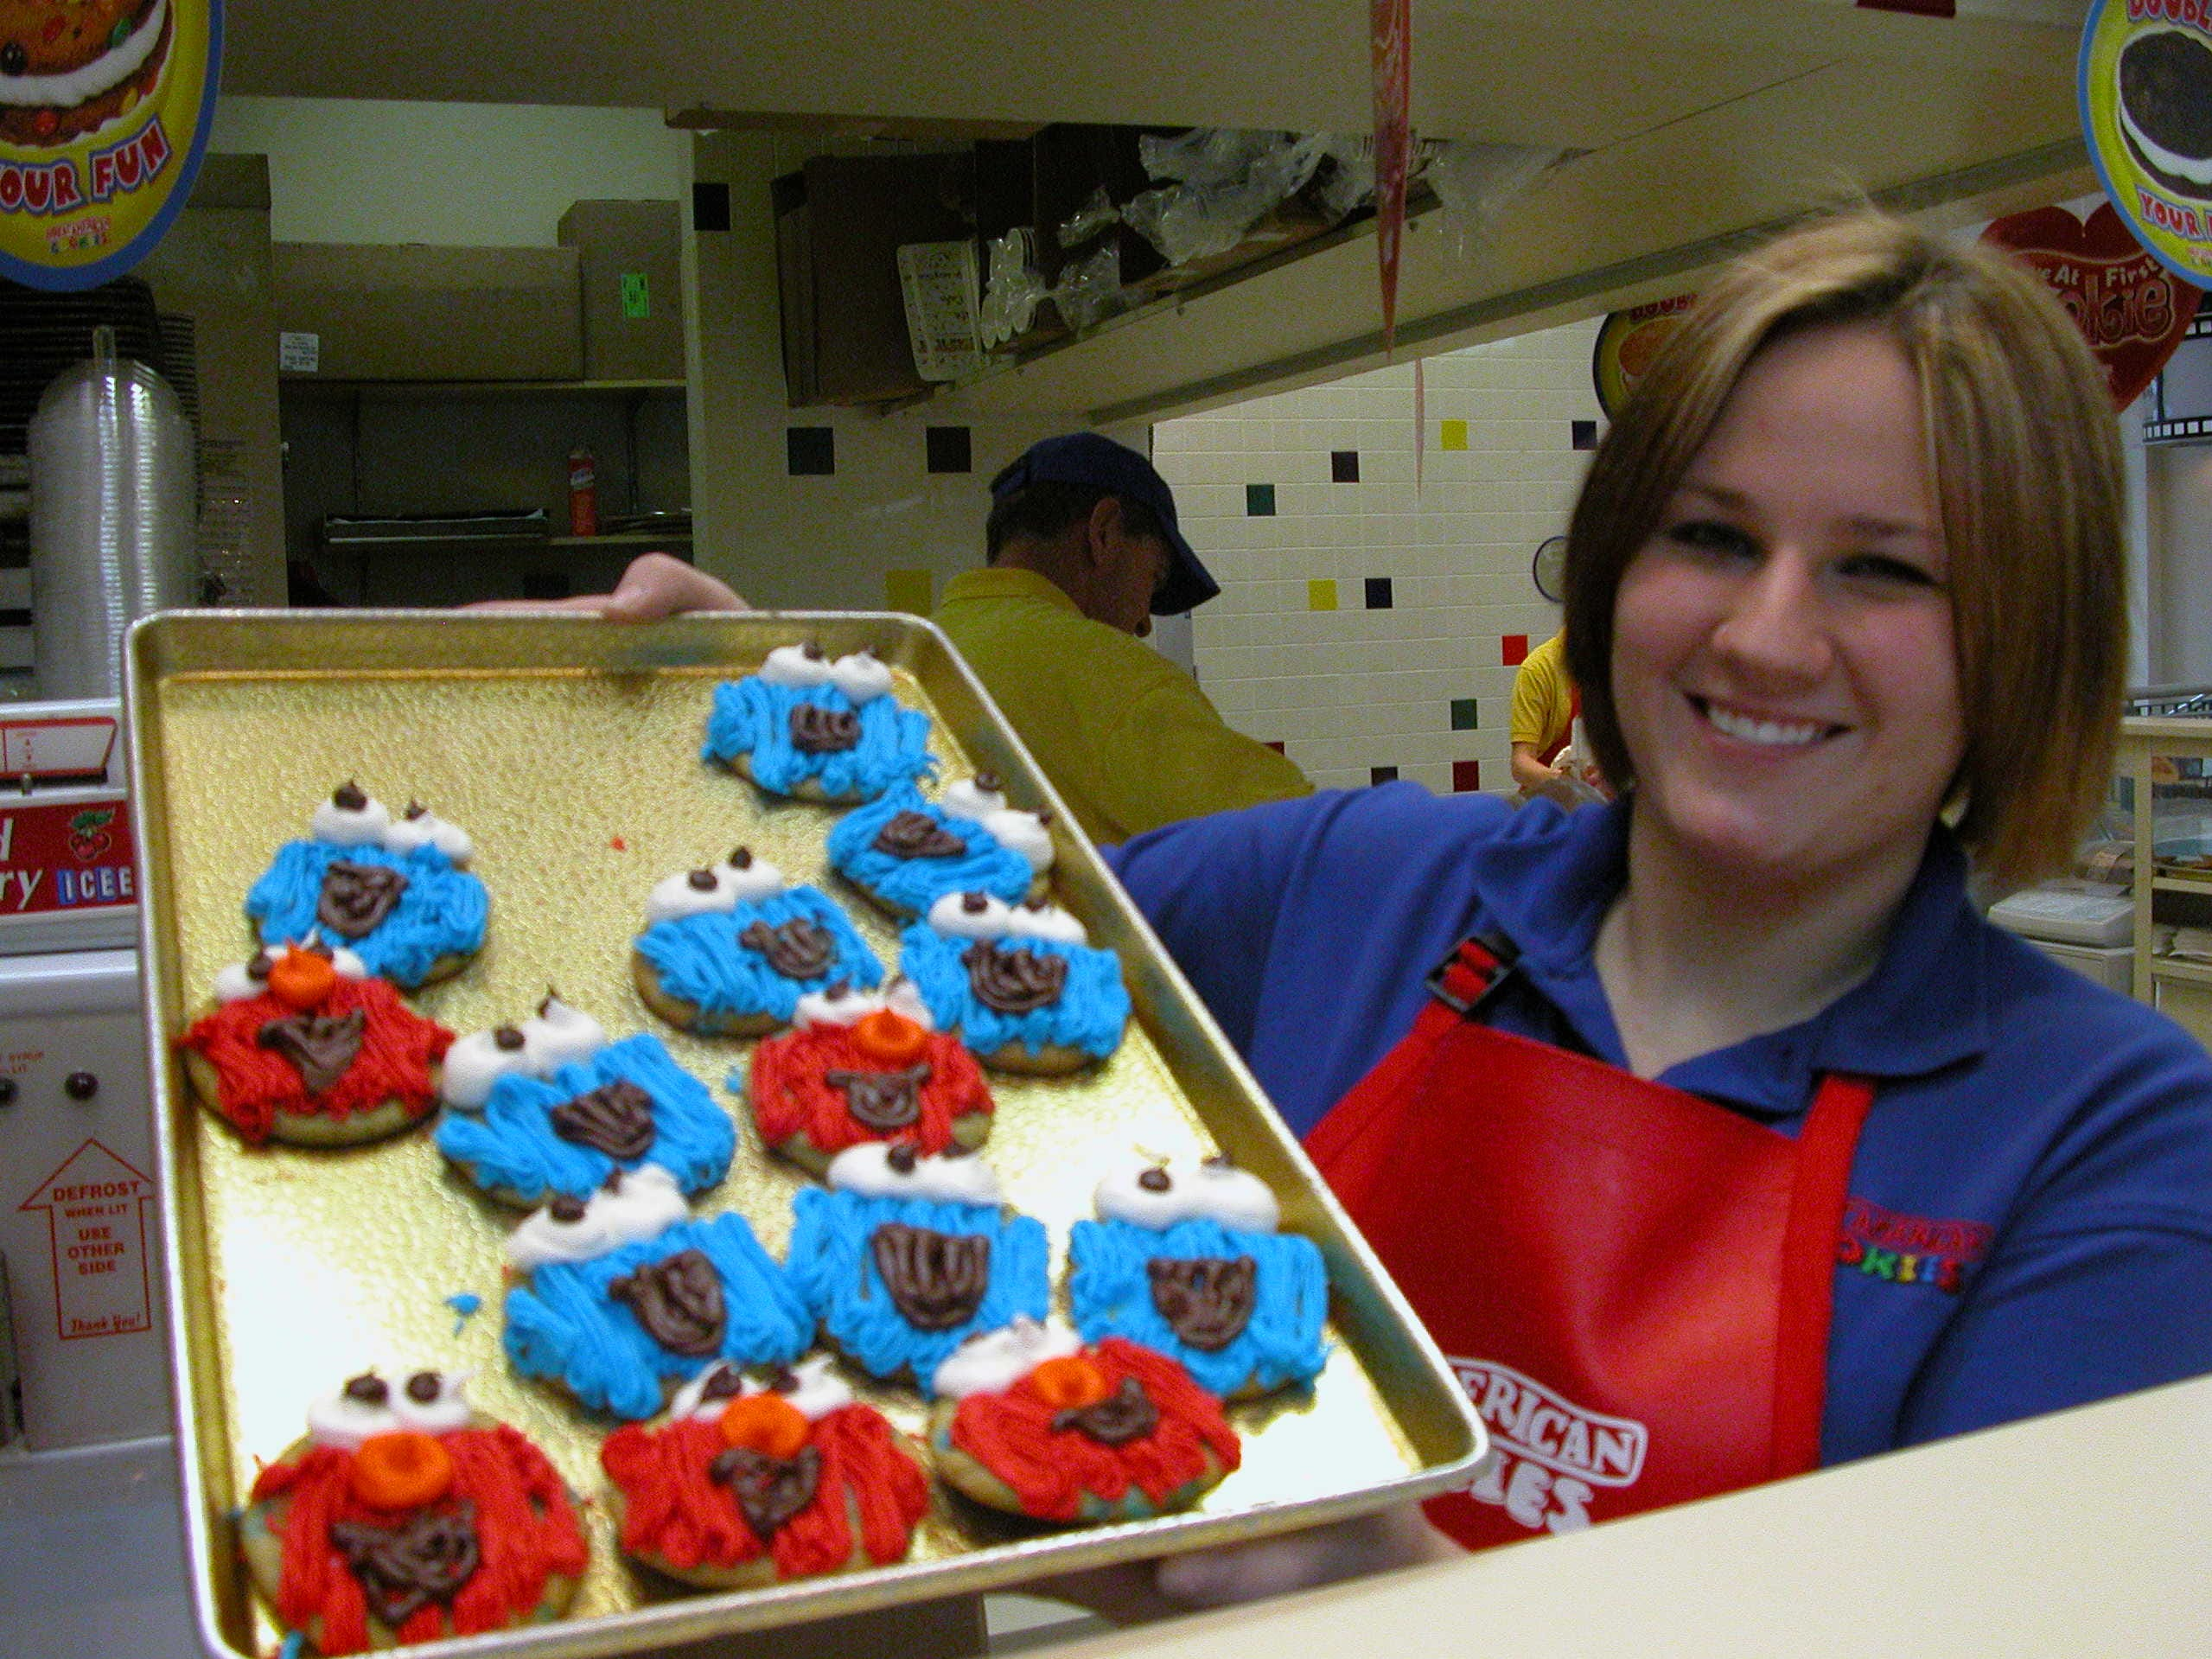 Ashley Trent serves up Cookie Monster and Elmo cookies at West Town Mall.